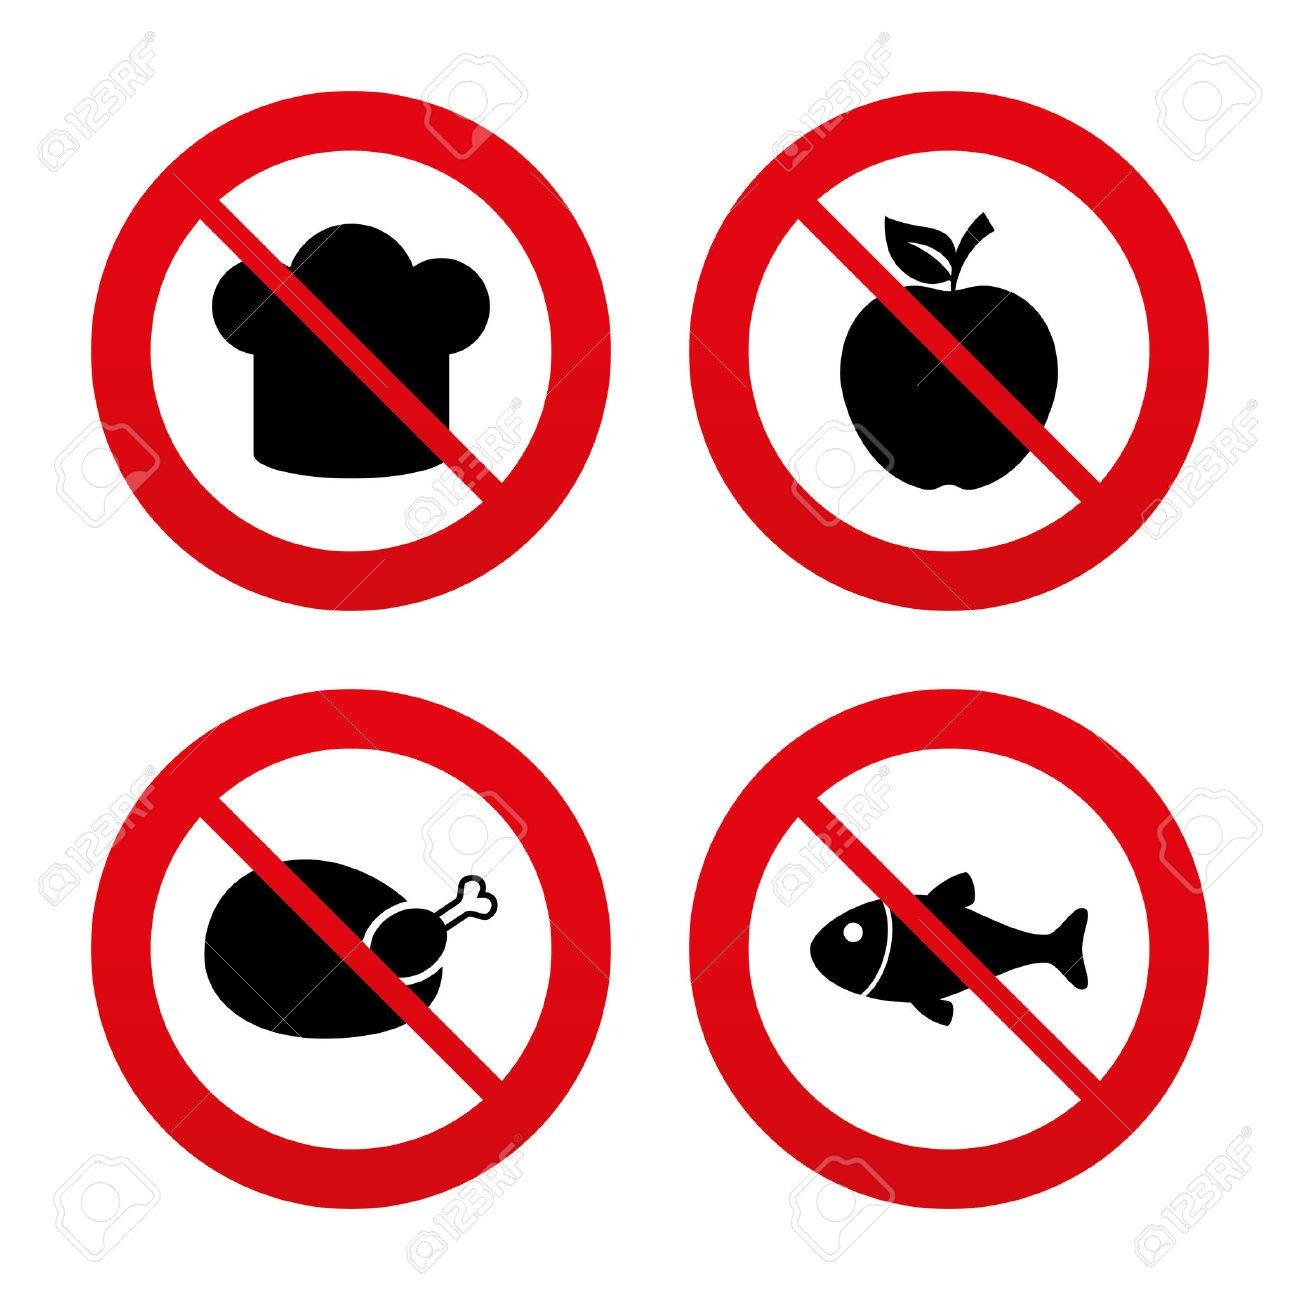 No Ban Or Stop Signs Food Icons Apple Fruit With Leaf Symbol Chicken Meat Diagram